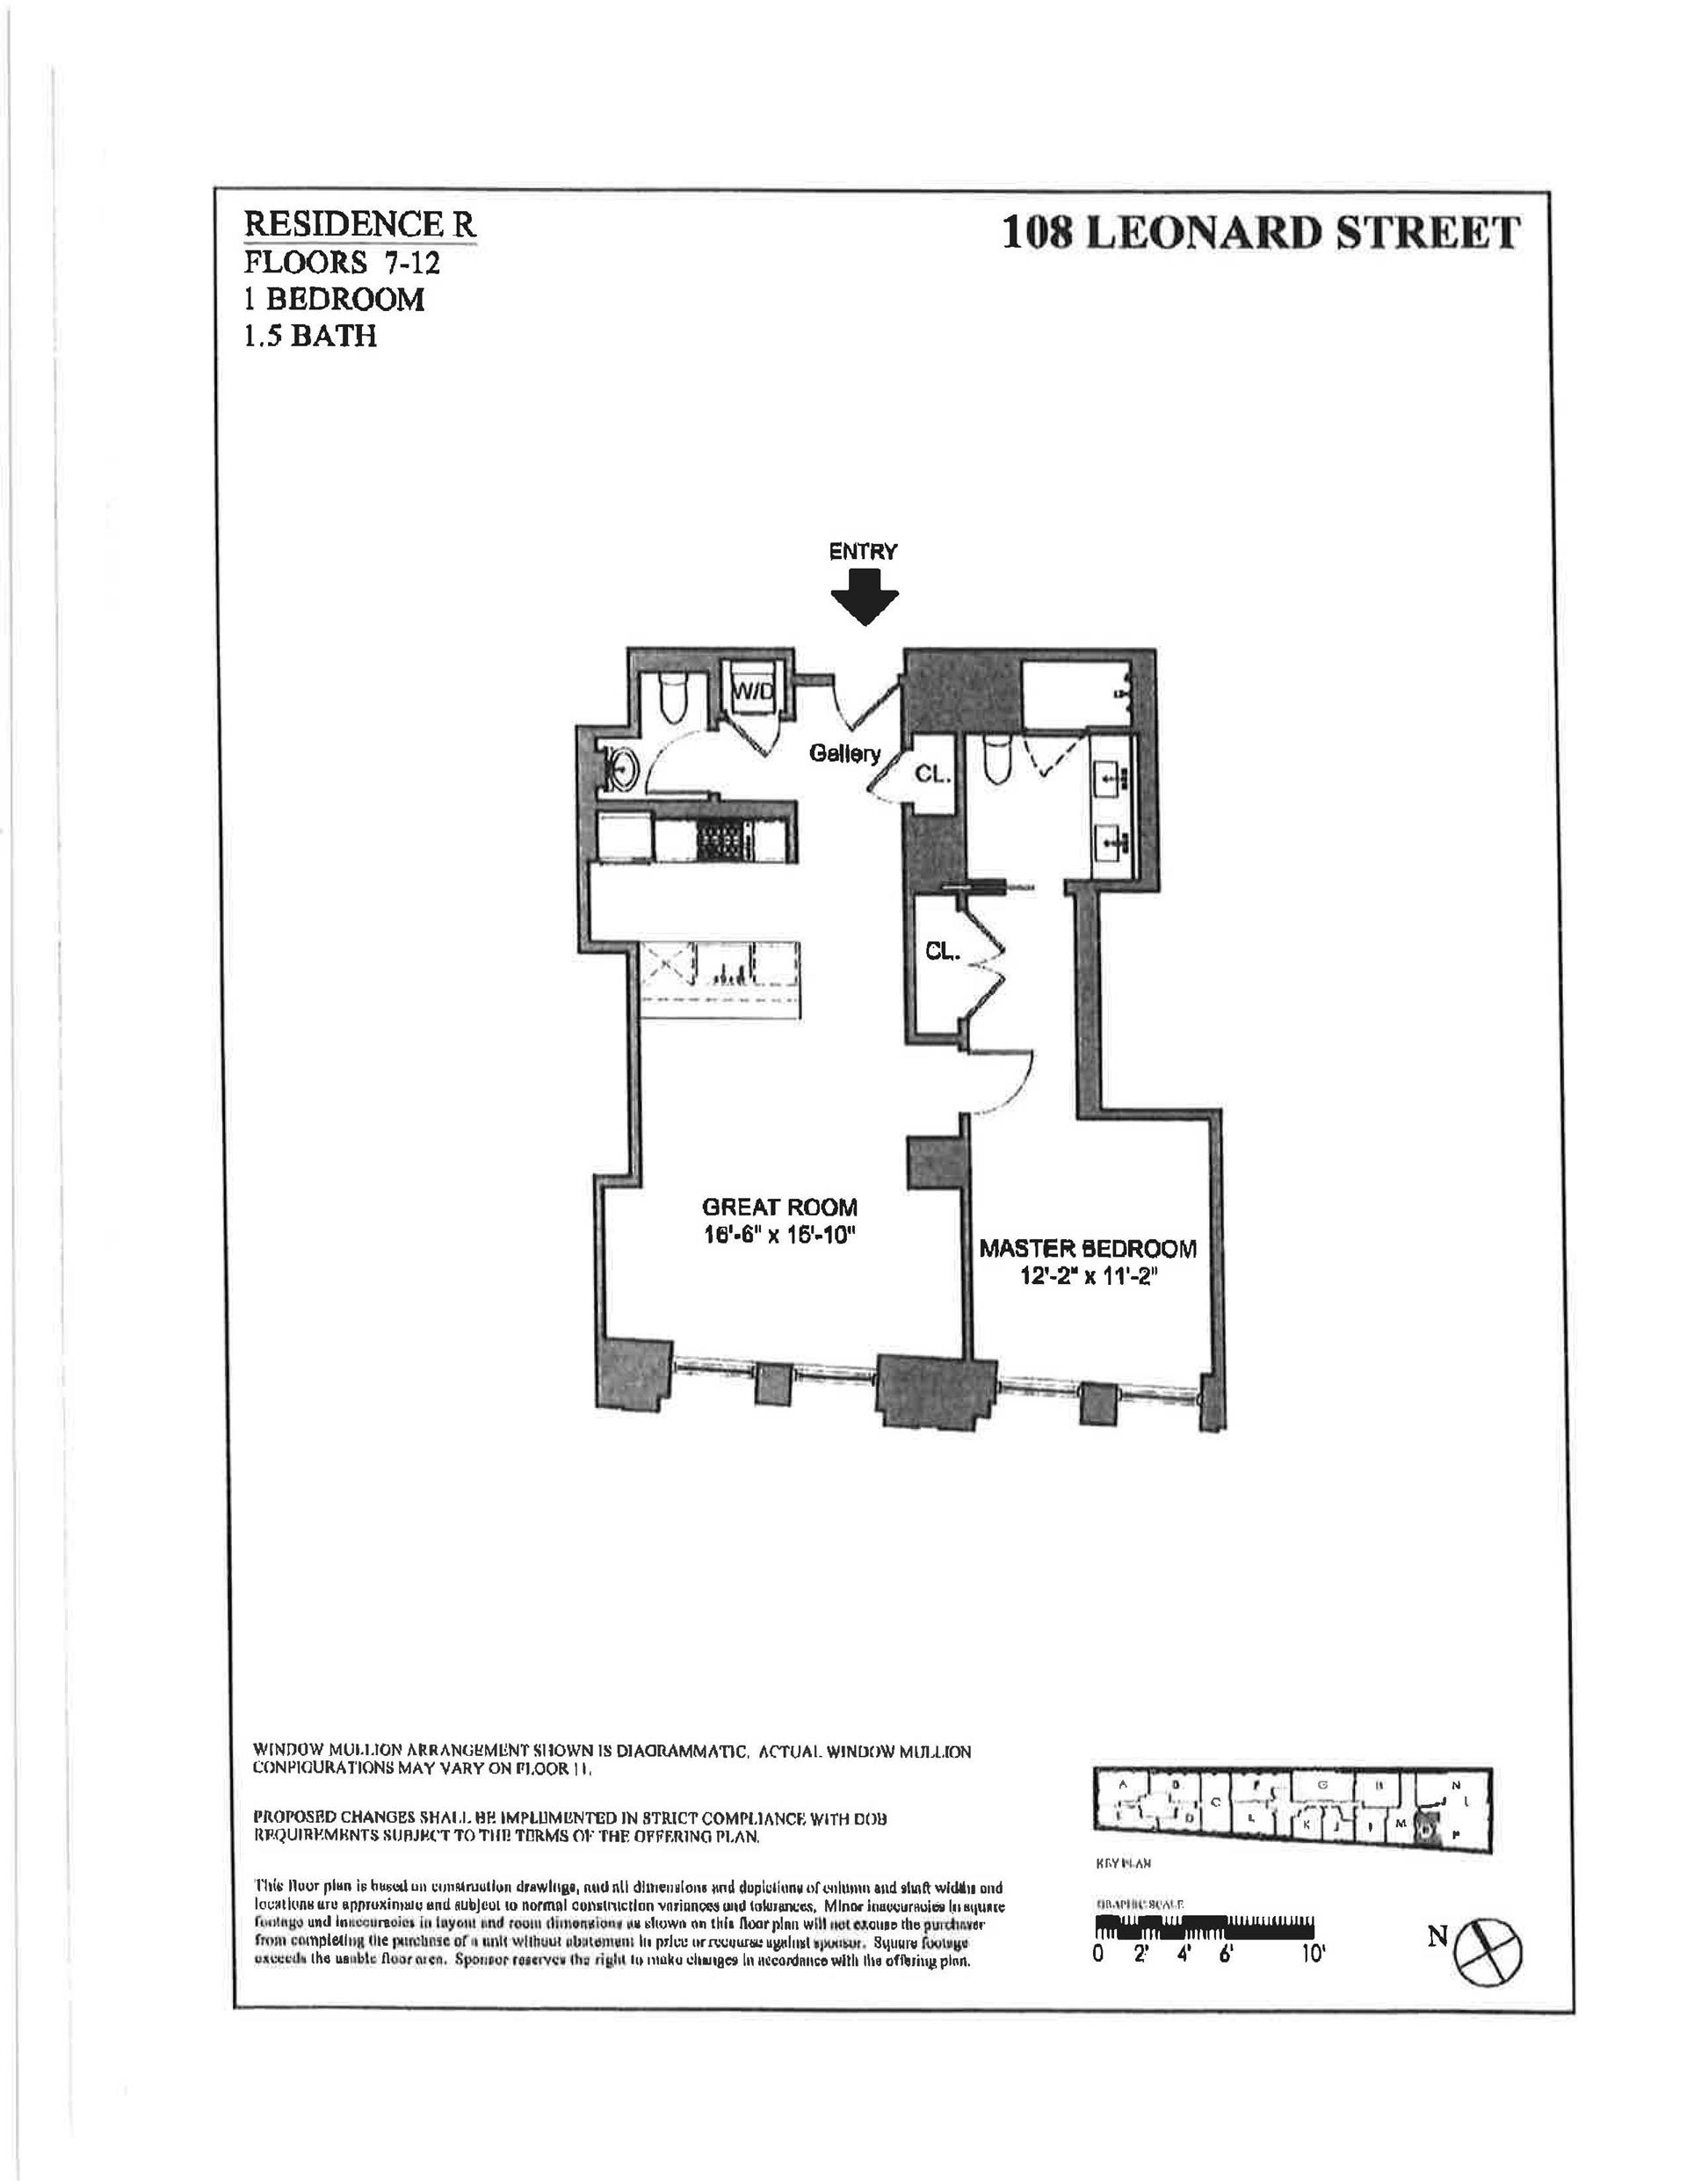 Floor plan of 108 Leonard St, 10R - TriBeCa, New York